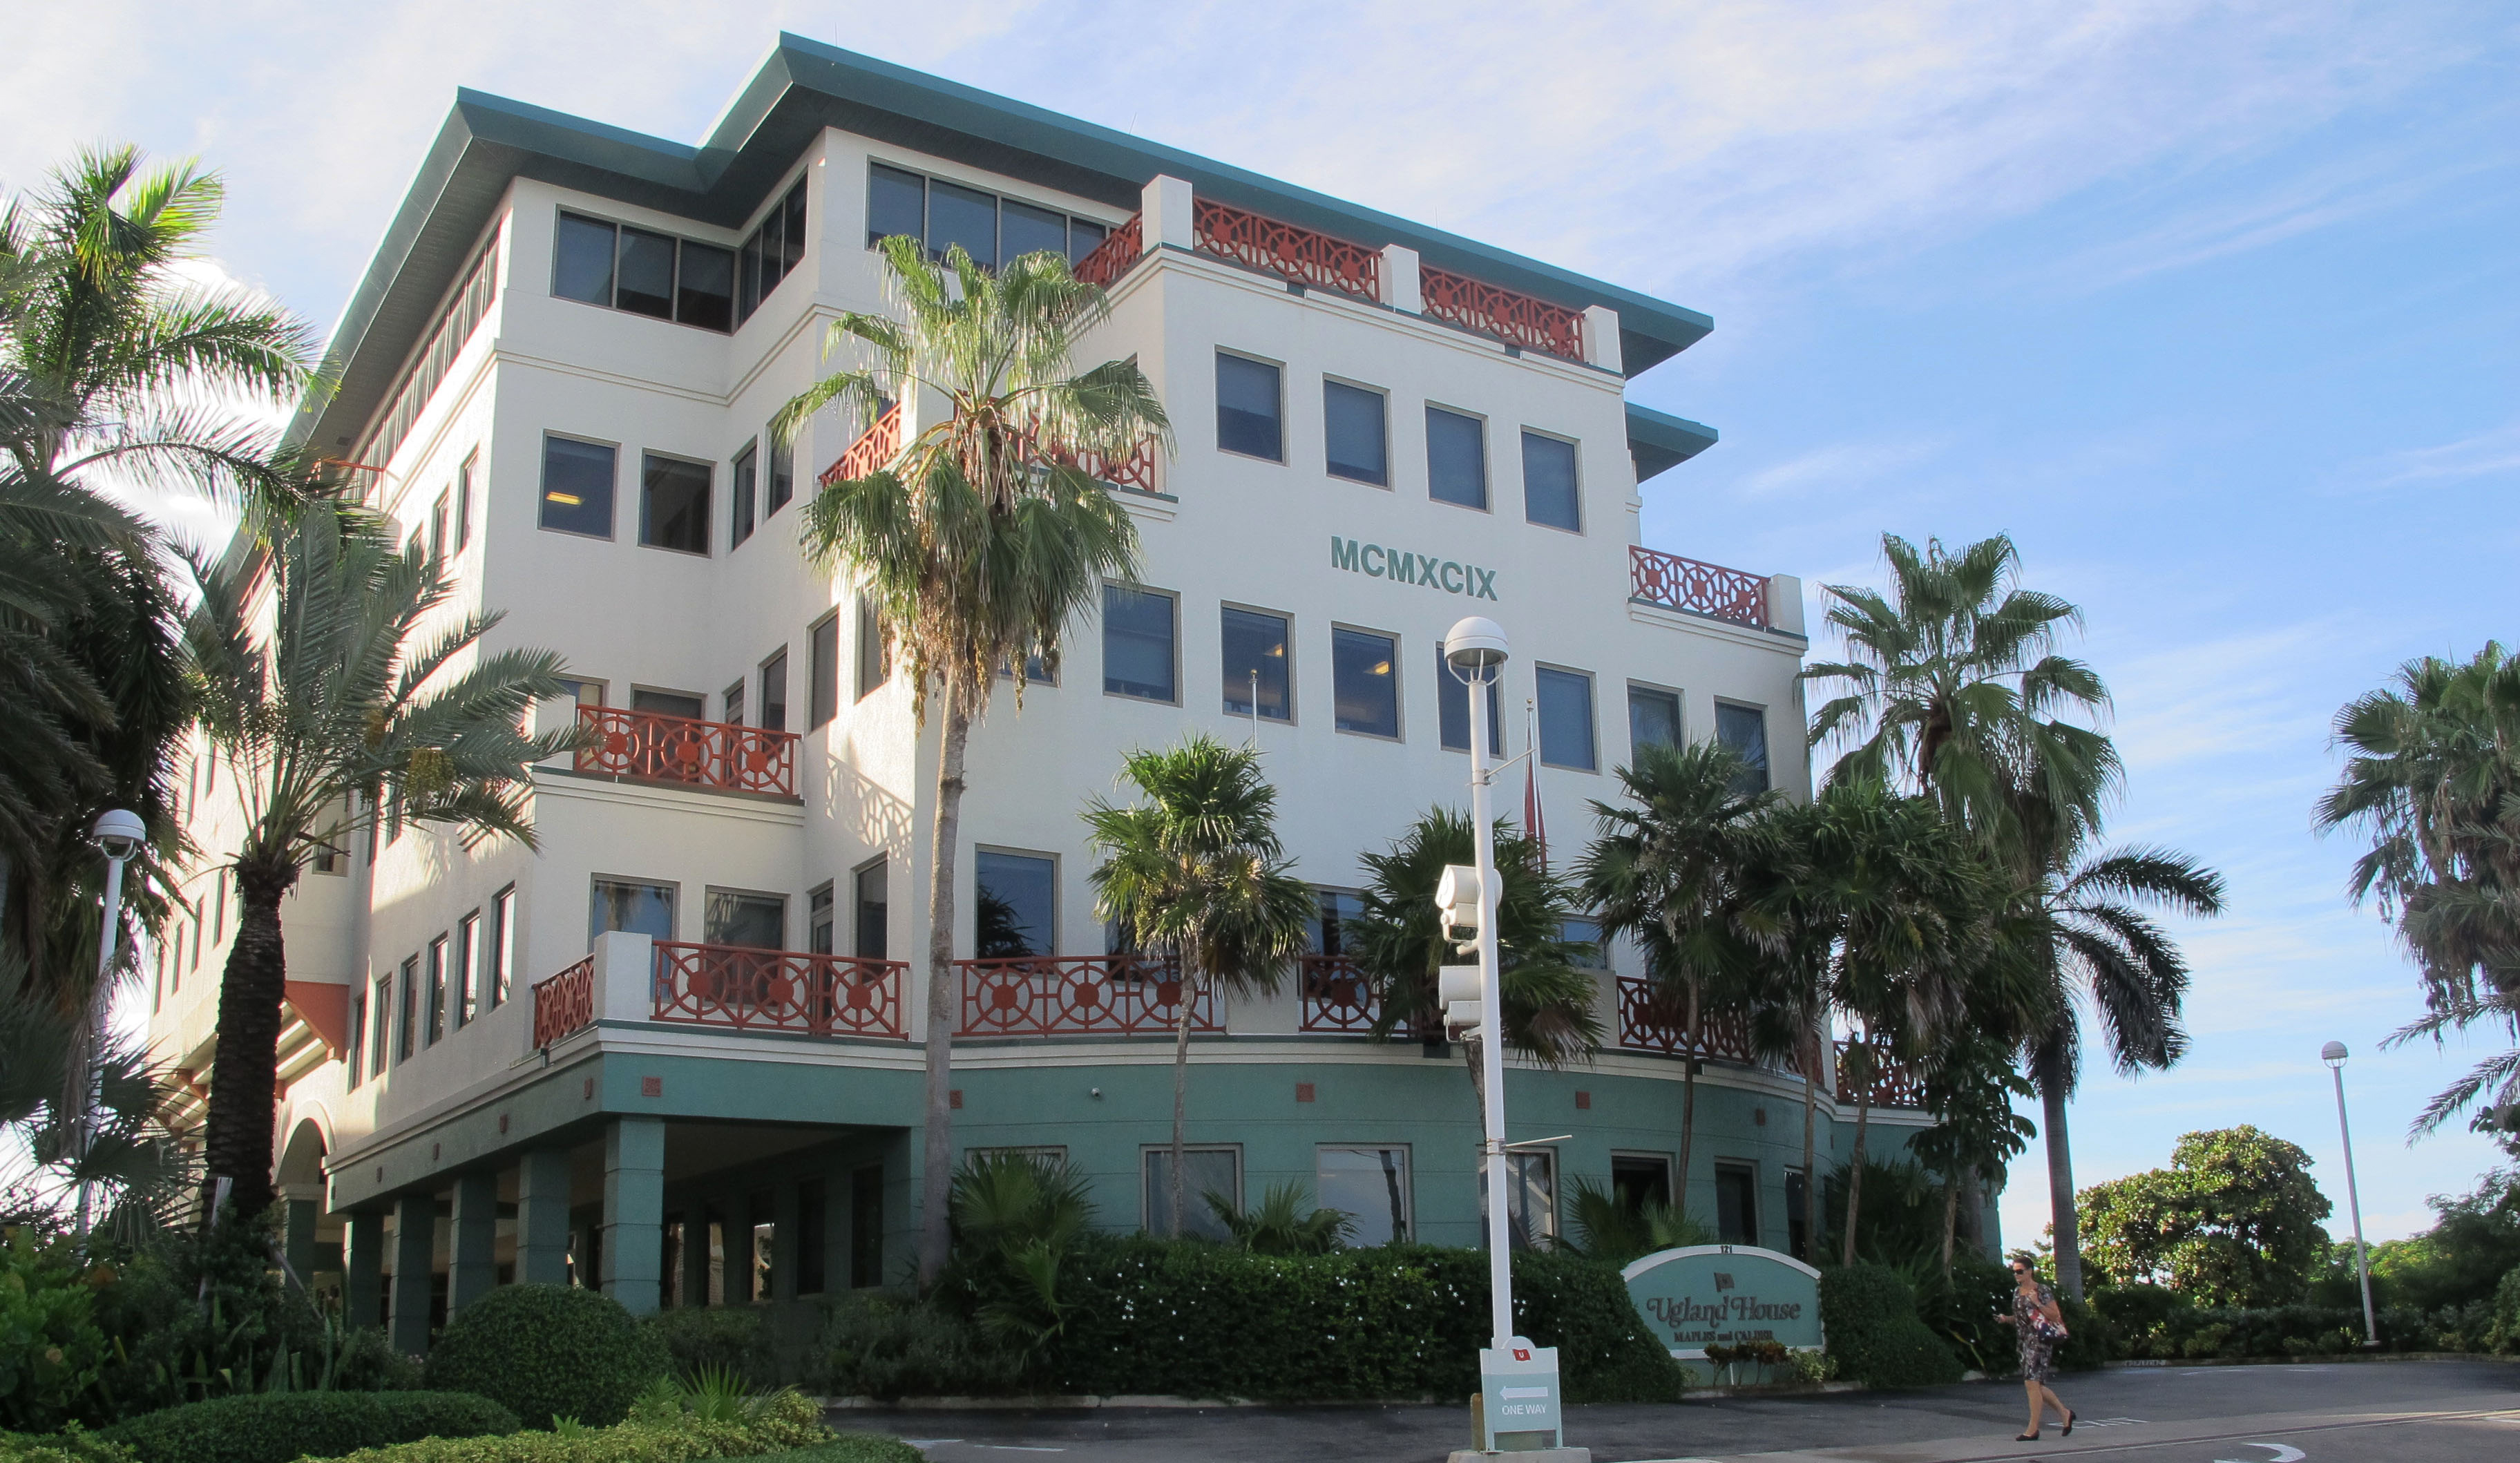 The Ugland House in George Town on Grand Cayman Island is the registered office for thousands of global companies. It has helped build the Cayman Islands into one of the most famous offshore banking centers.